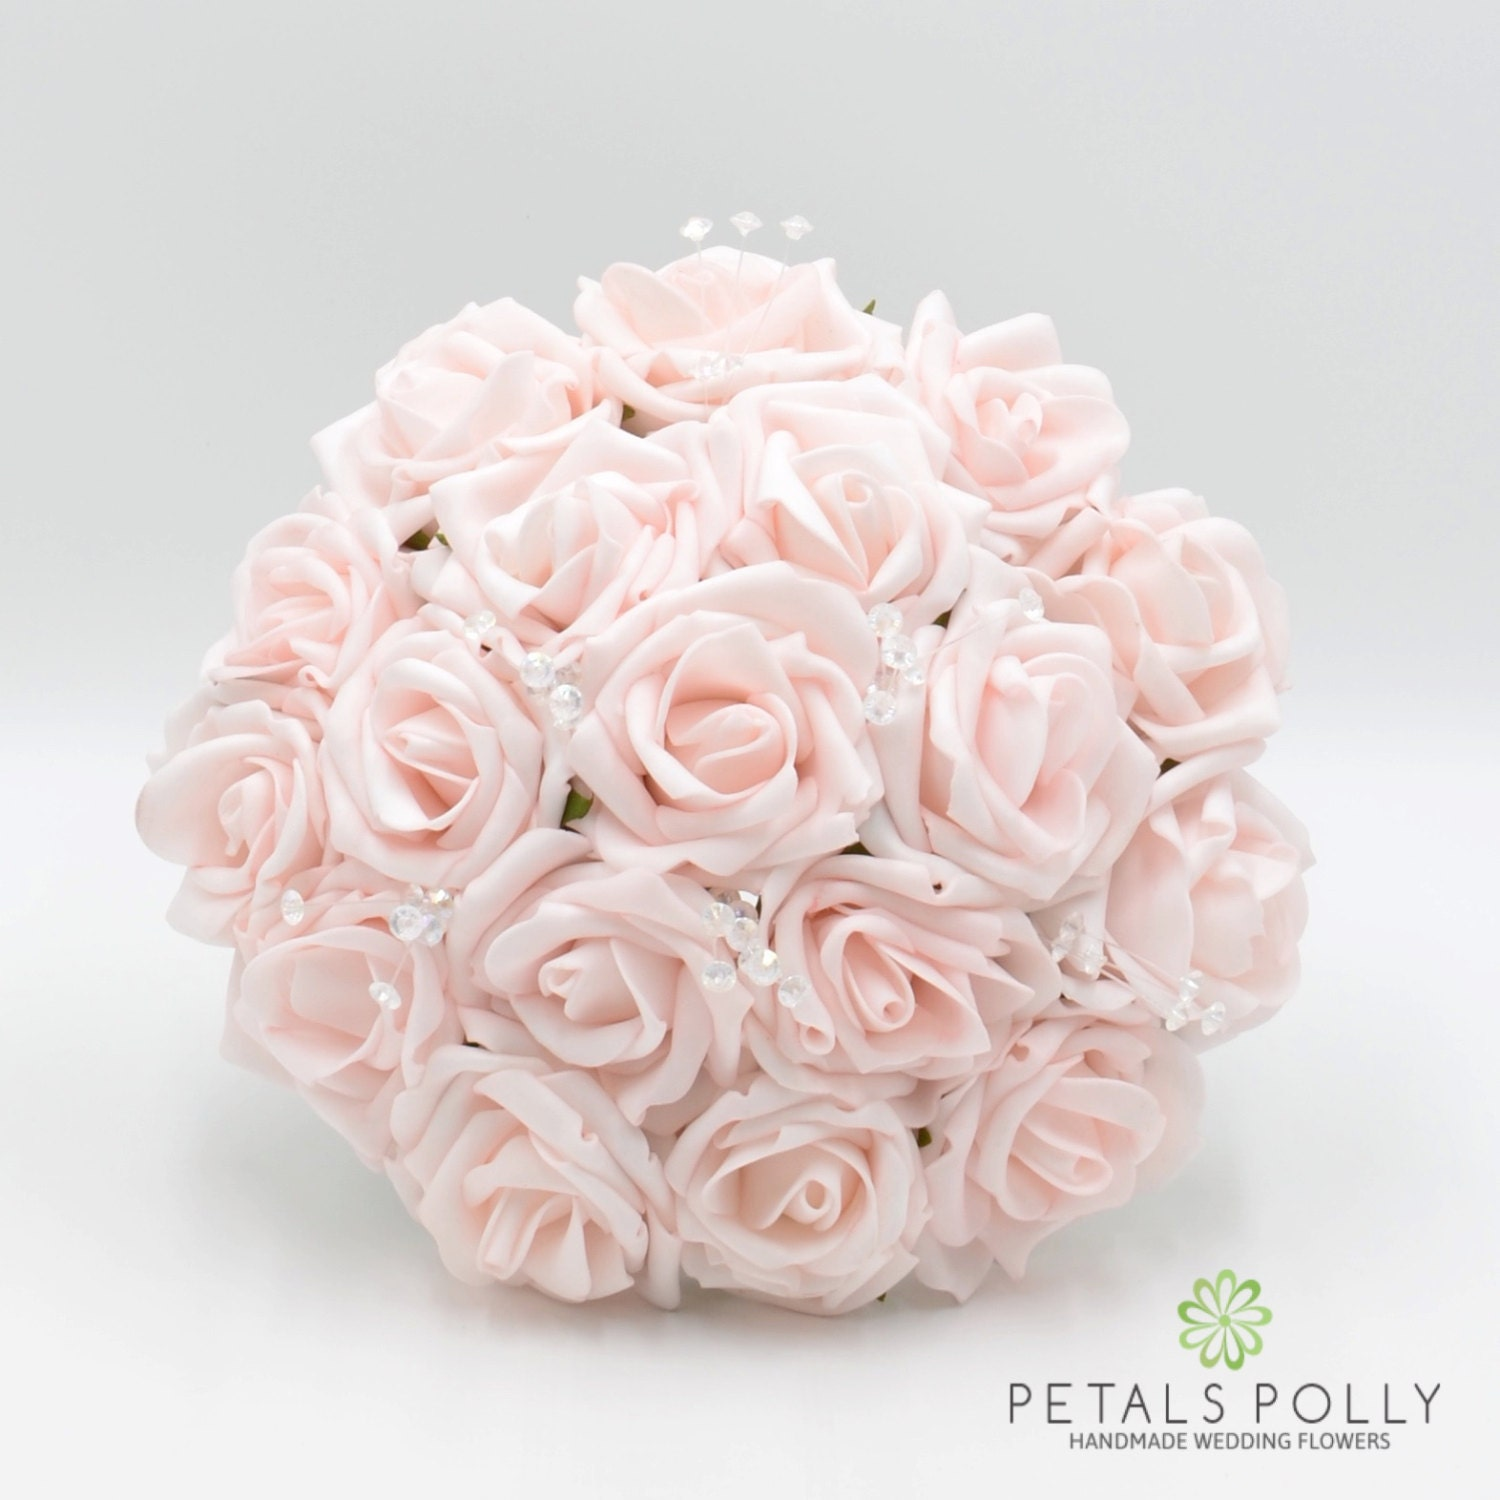 Artificial Wedding Flowers Blush Pink Bridesmaids Bouquet Posy